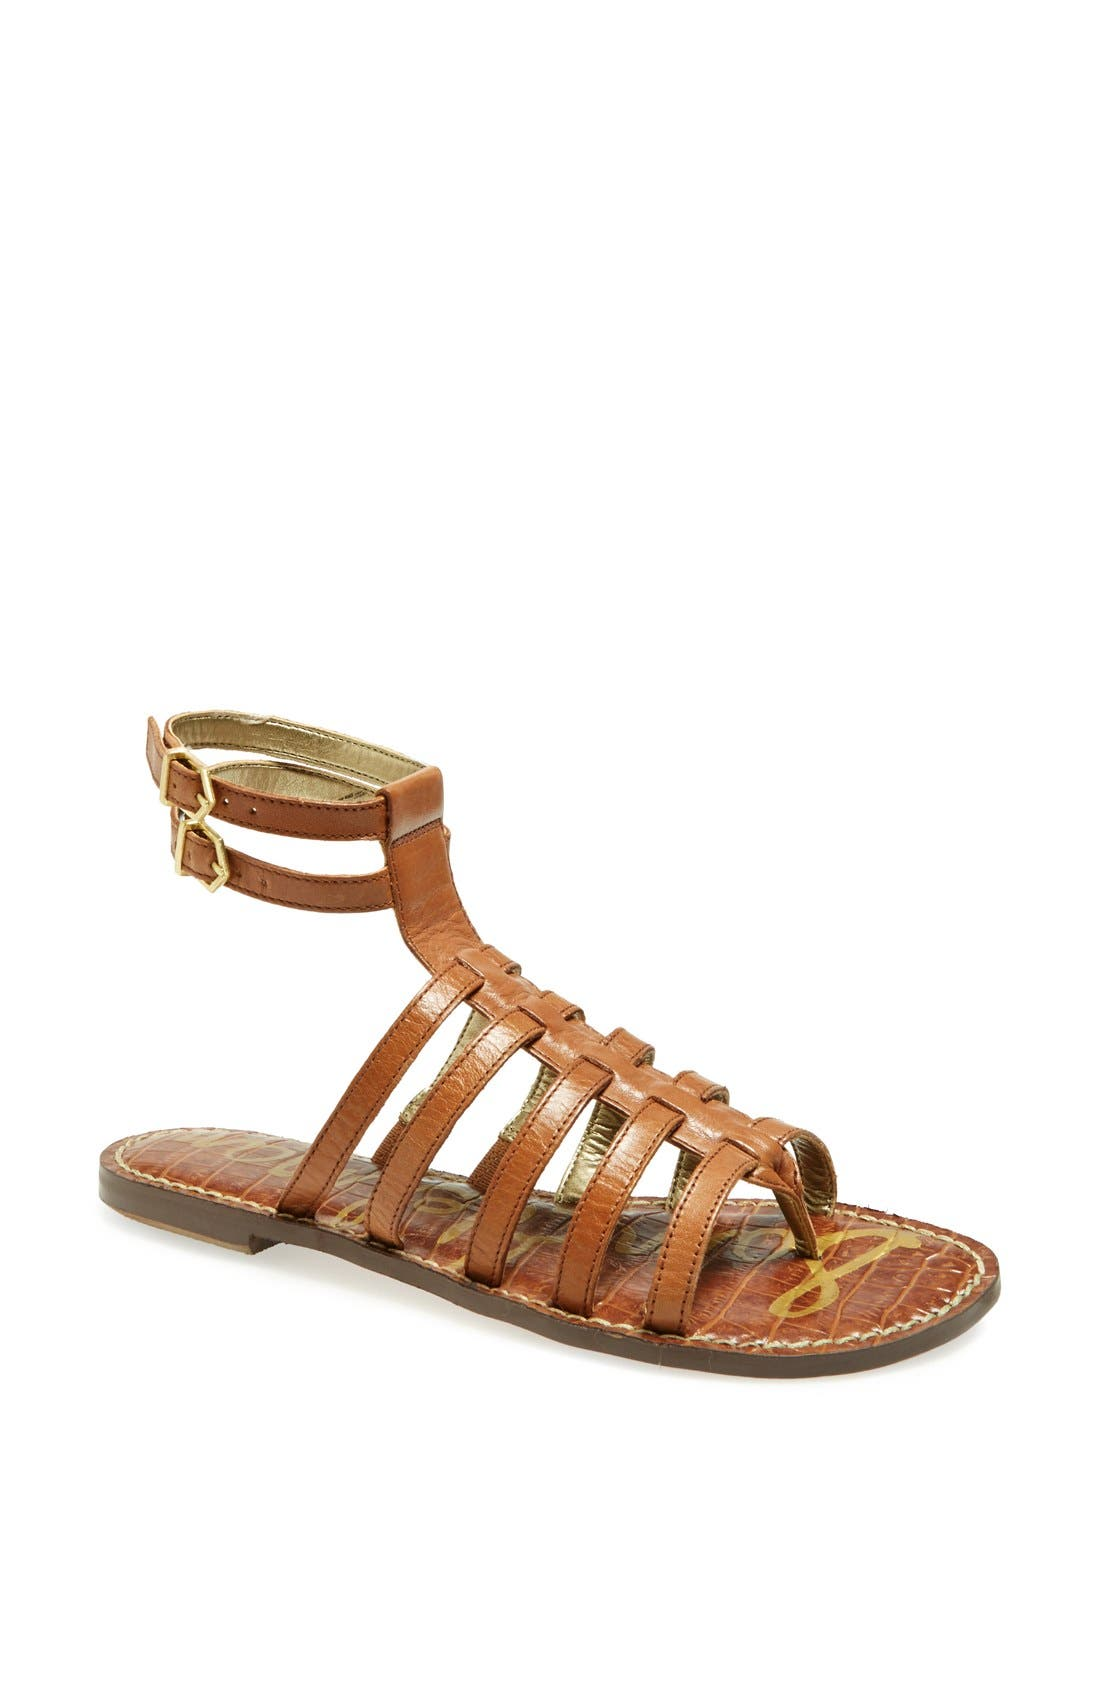 'Gilda' Sandal,                             Main thumbnail 1, color,                             SADDLE LEATHER